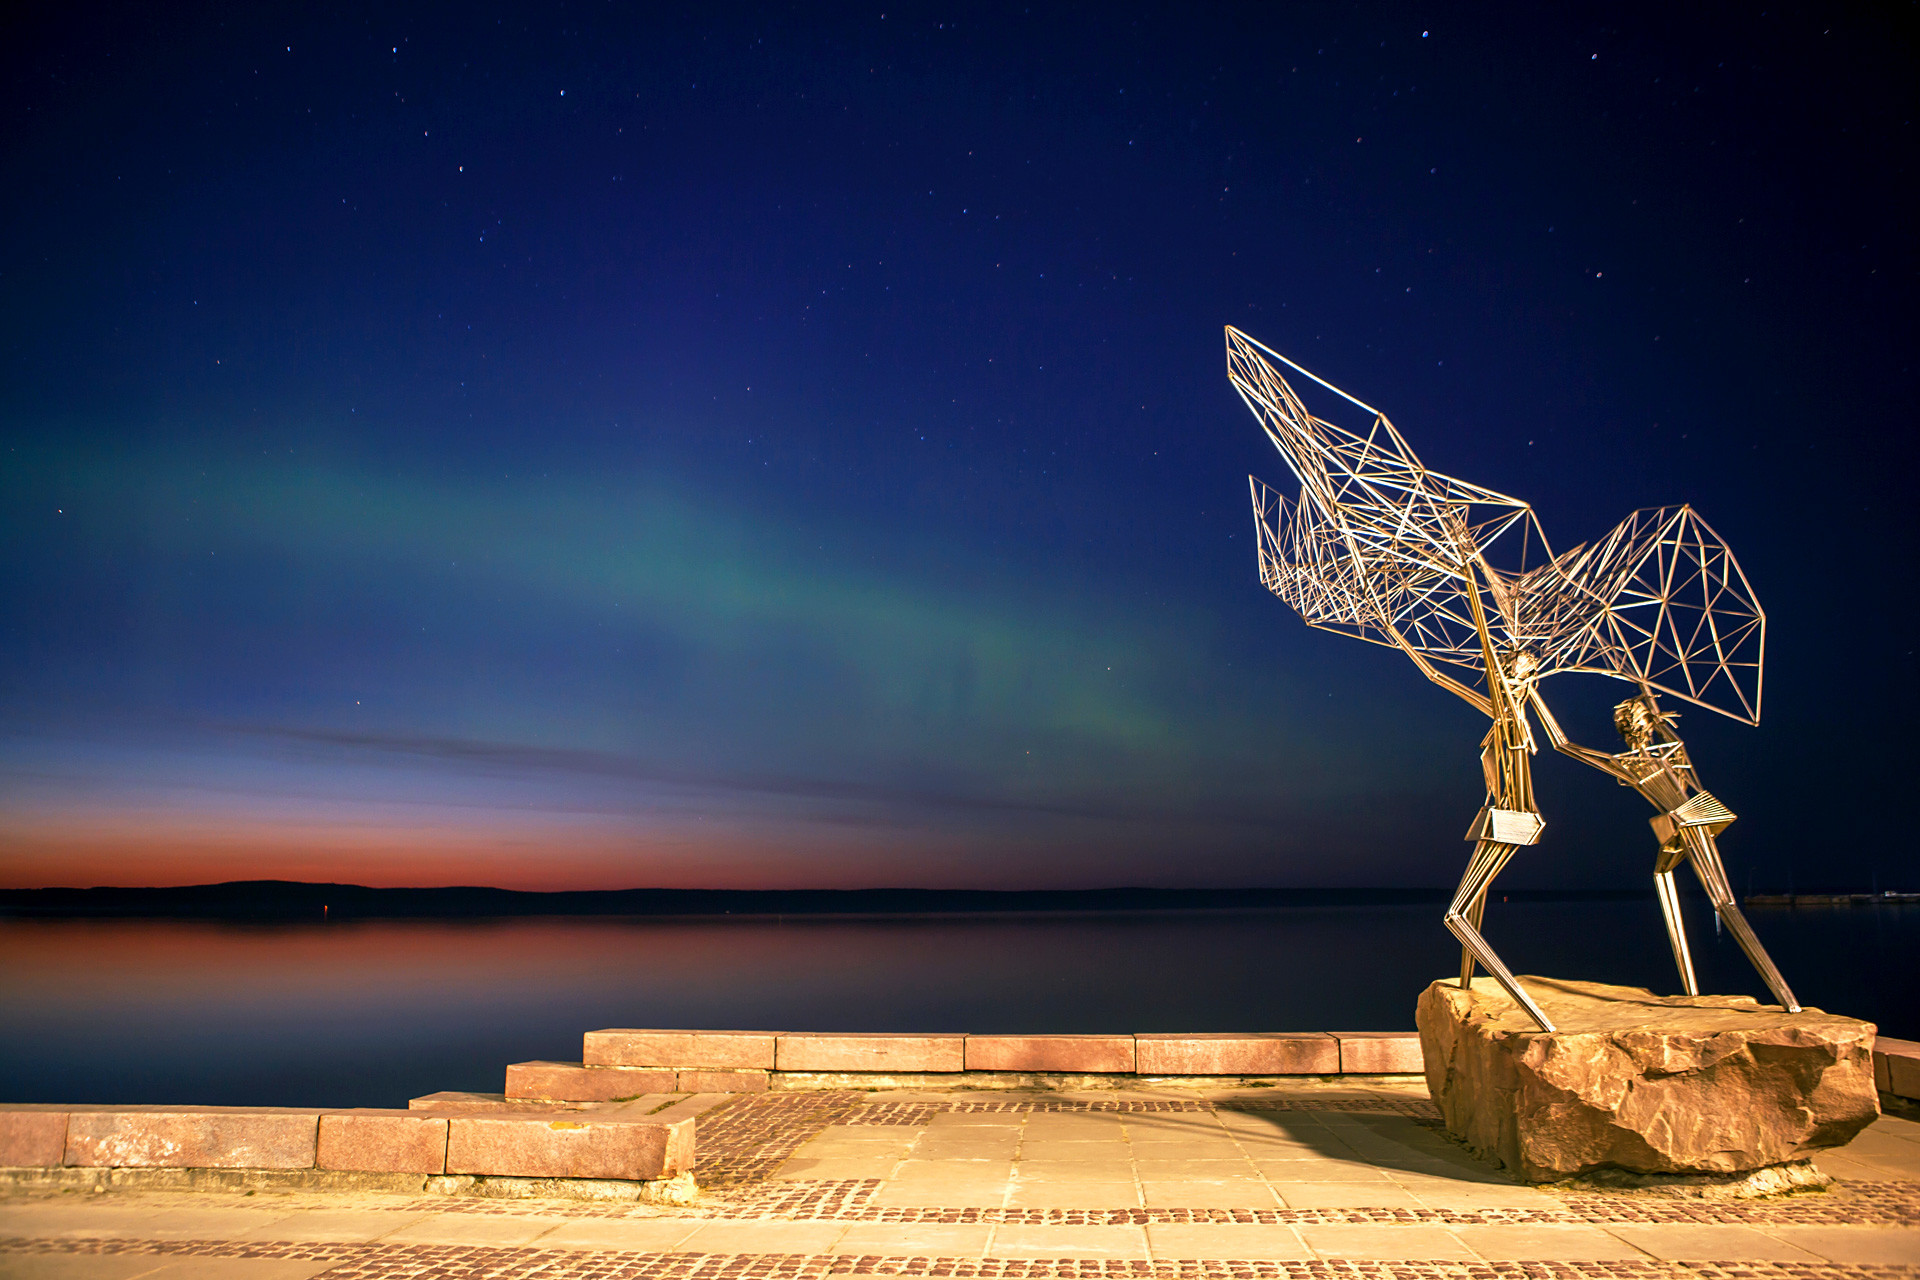 Aurora borealis (northern lights) over Lake Onega in Petrozavodsk.